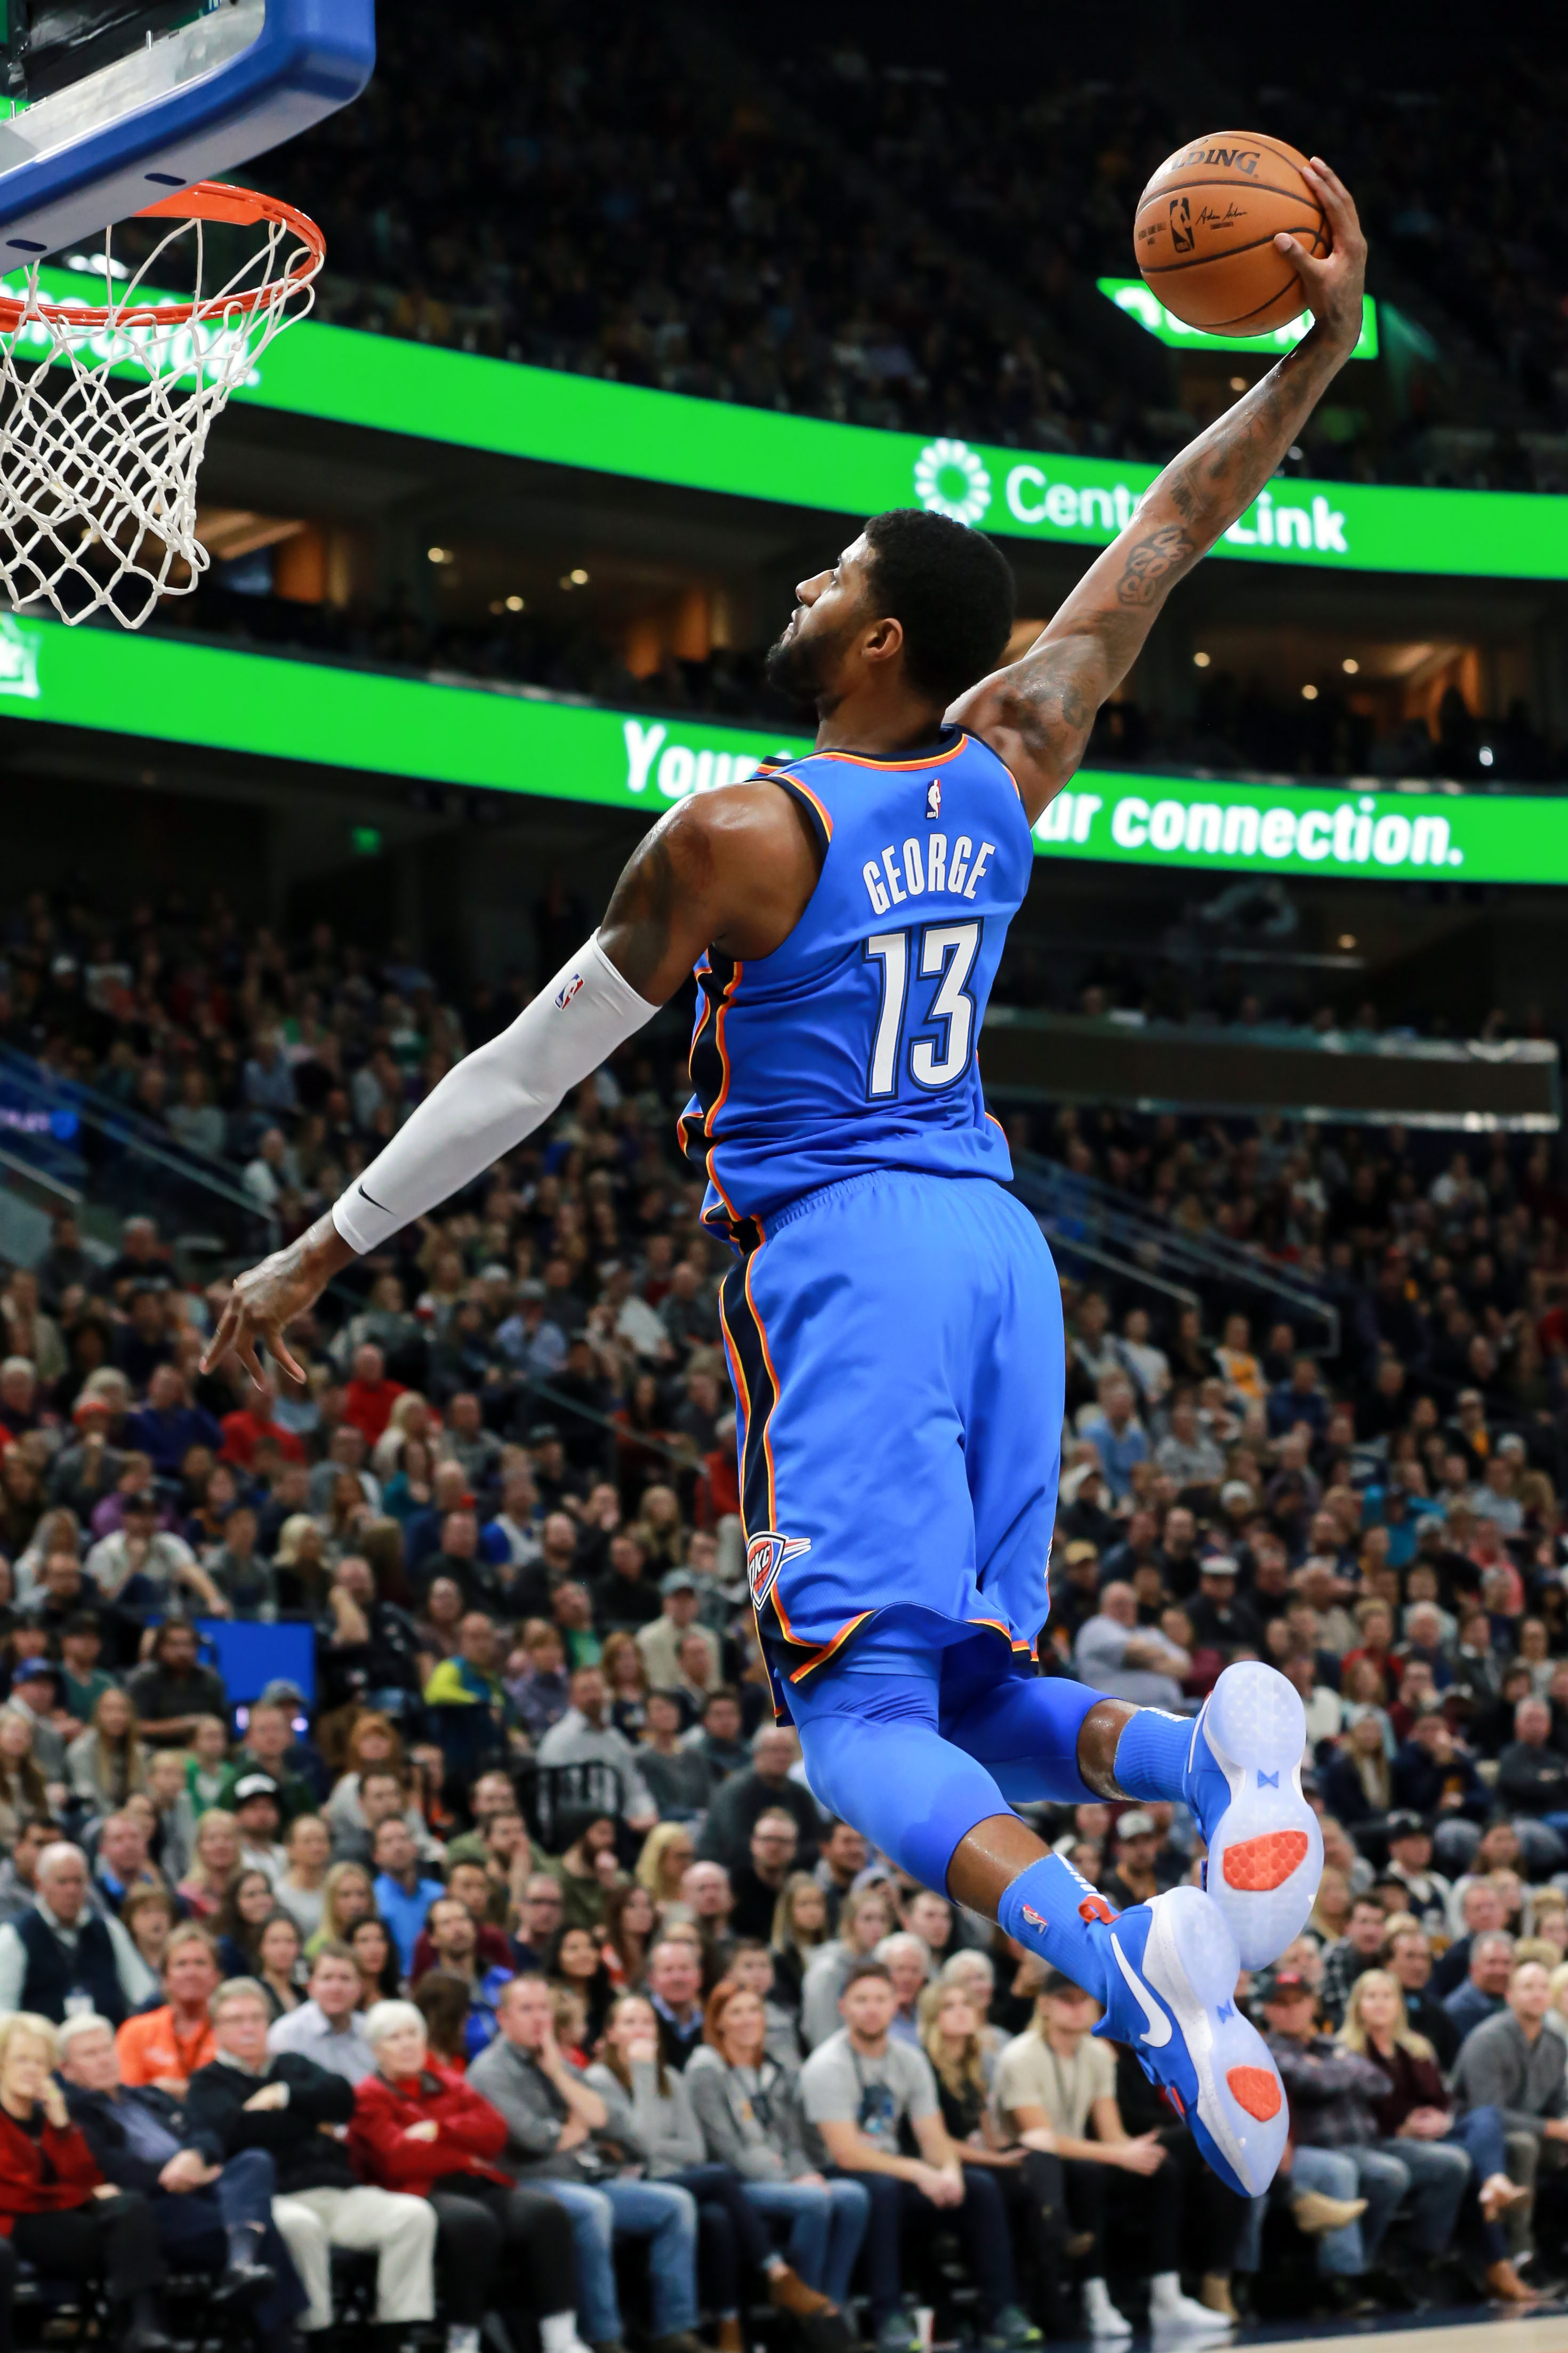 Archives page 8 welcome to loud city recap okc shuts down utah again 103 89 voltagebd Gallery